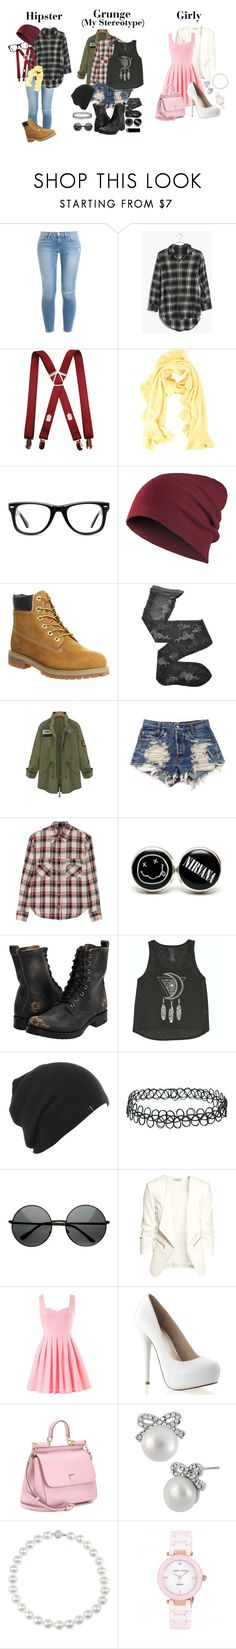 """""""Stereotype Tag!"""" by ticci-toby ❤ liked on Polyvore featuring Frame, Madewell, Magaschoni, Muse, Timberland, Fogal, Levi's, Étoile Isabel Marant, Frye and Billabong"""